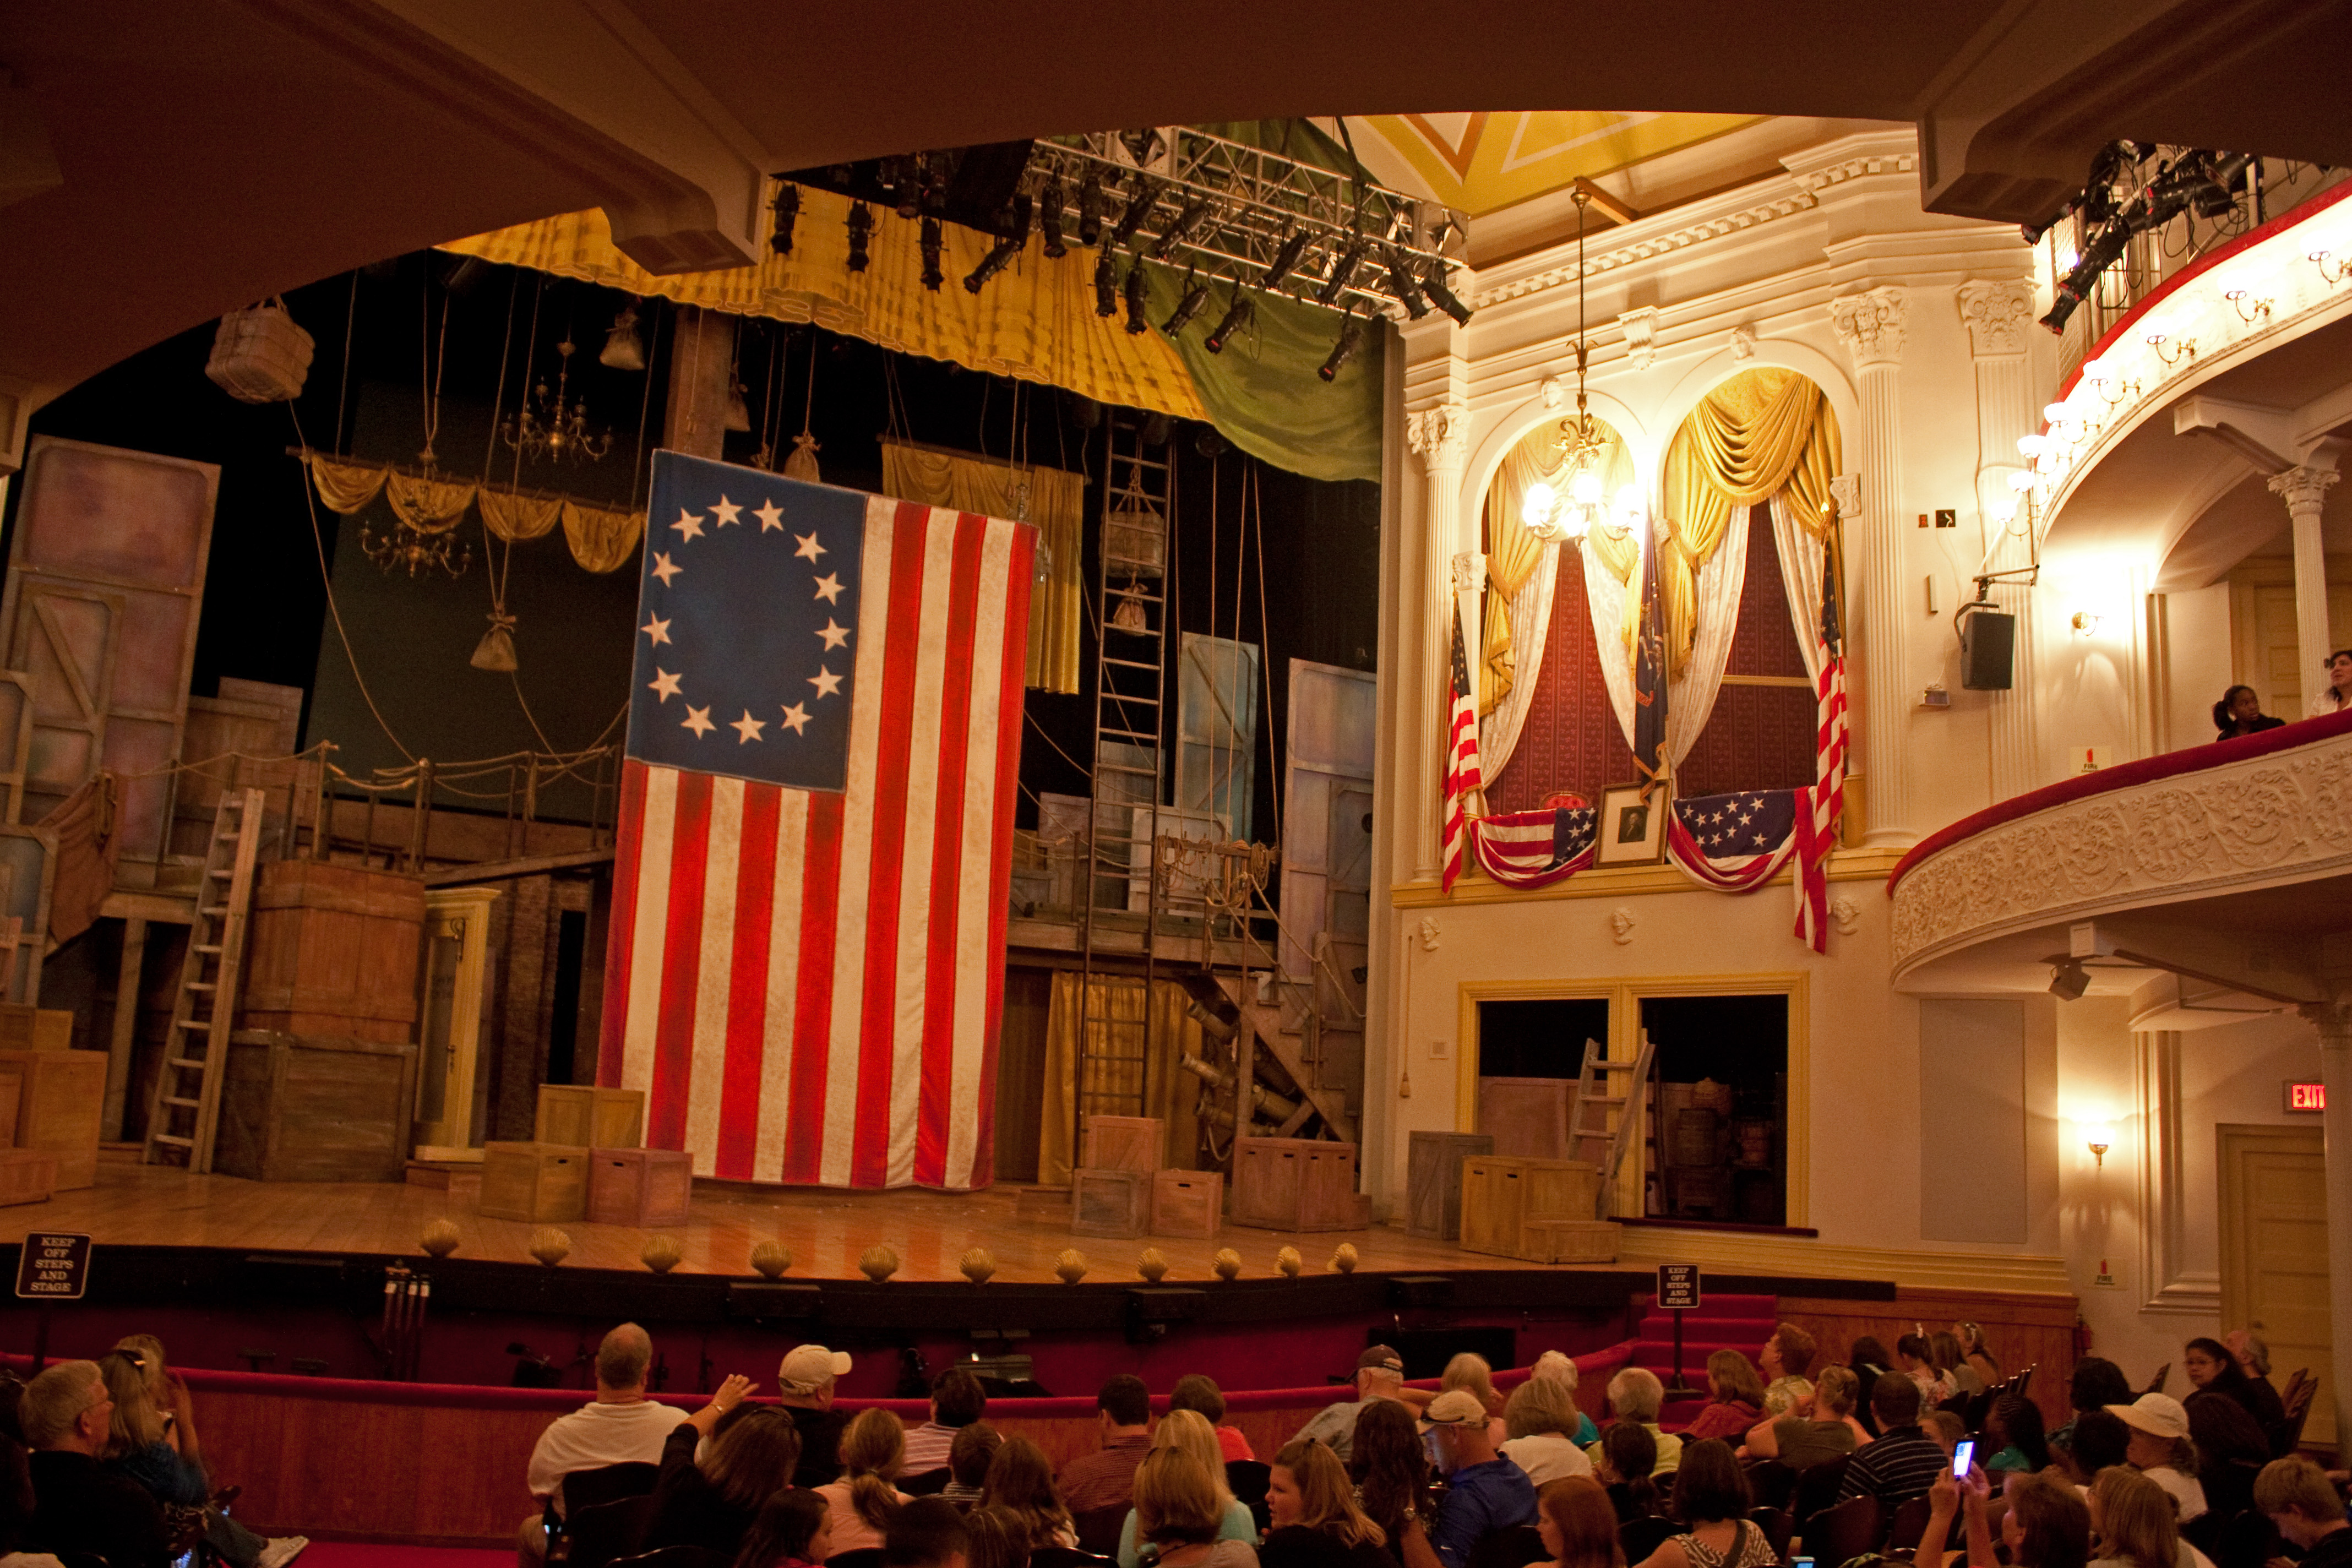 Inside of Ford's Theatre in Washington